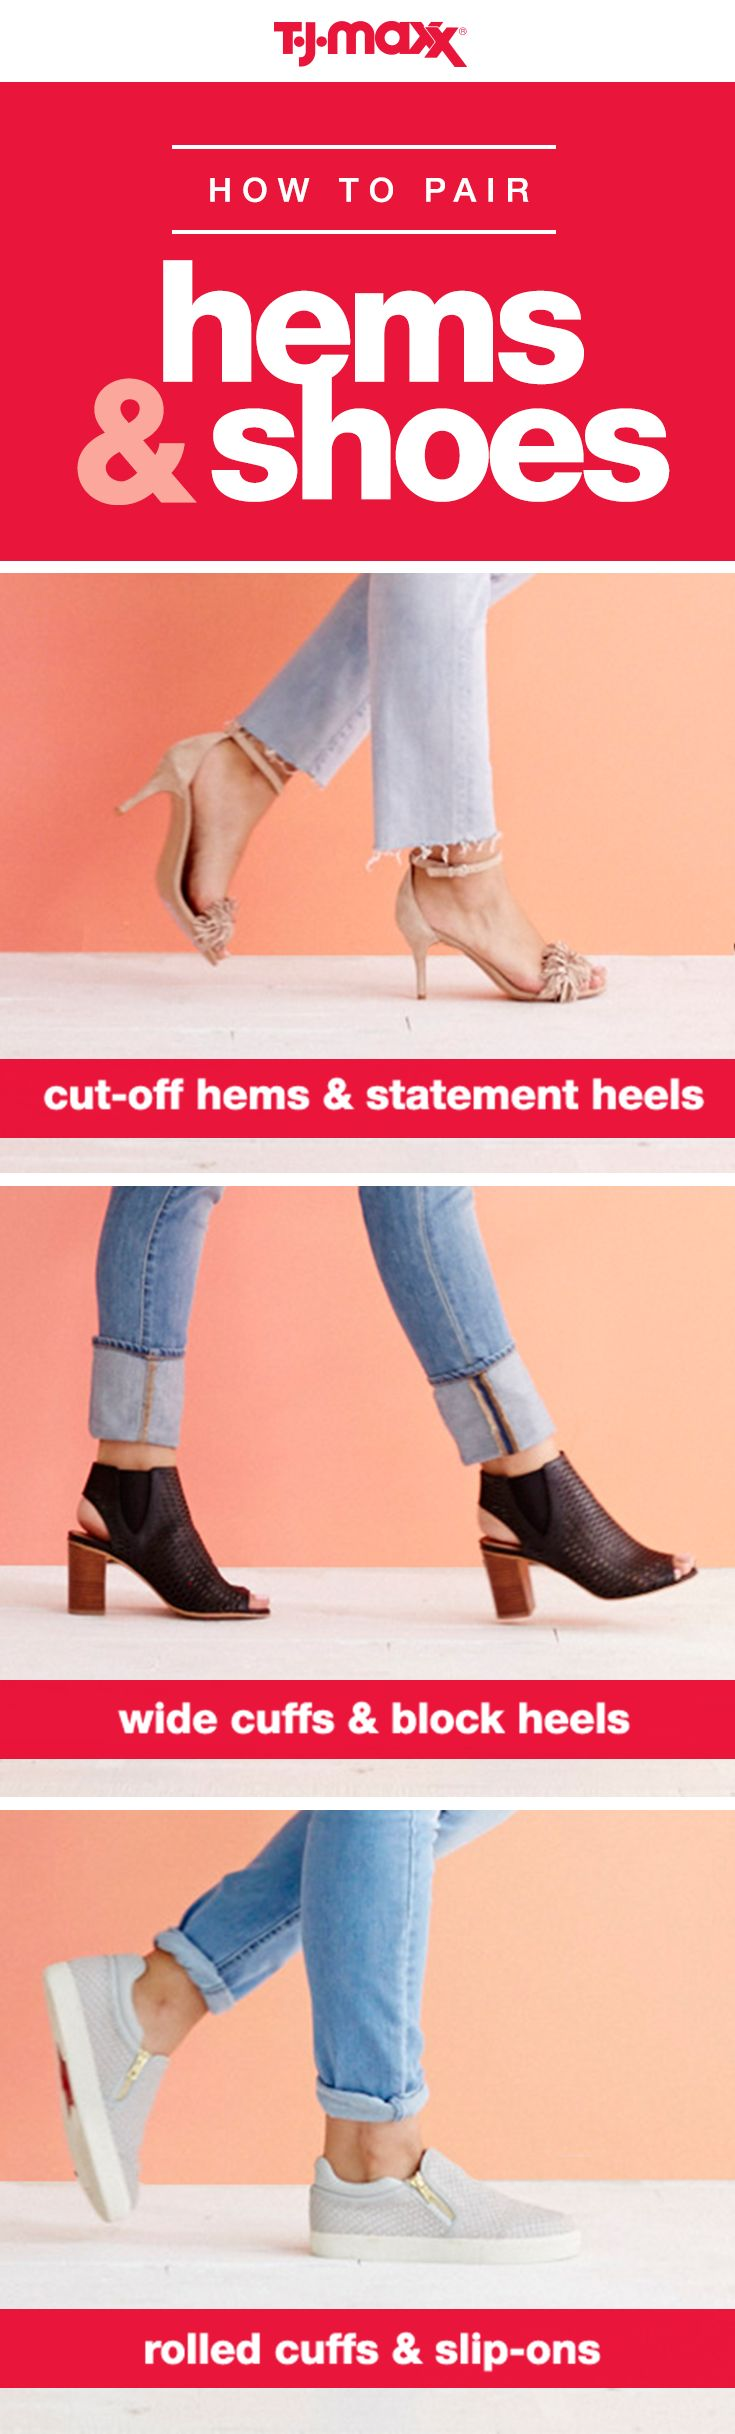 The best part about denim? You can dress it up with chic heels or keep it relaxed with booties or slip-ons. Plus, there are so many ways to style jeans this season. Frayed, fitted, cuffed or rolled, where them however you'd like. Shop shoes to wear with your favorite jeans at tjmaxx.com.